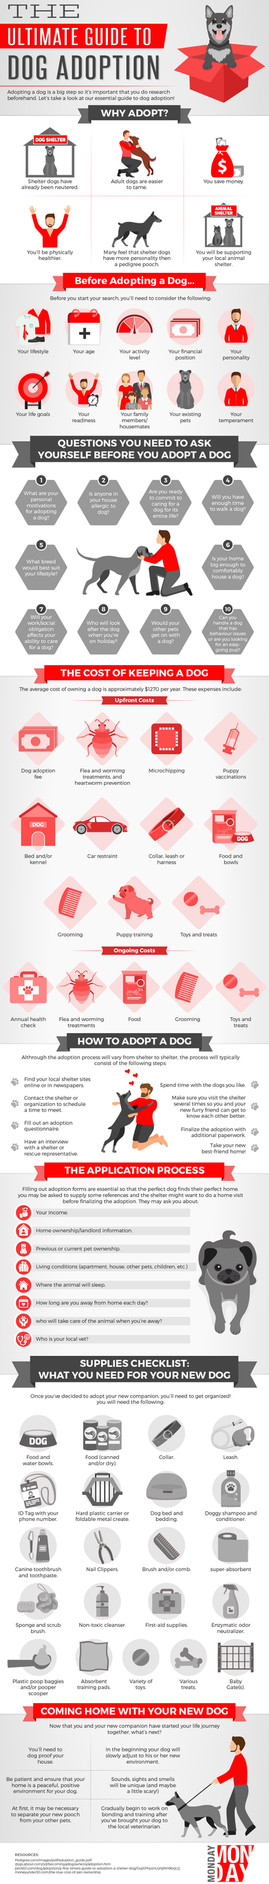 The Ultimate Guide To Dog Adoption